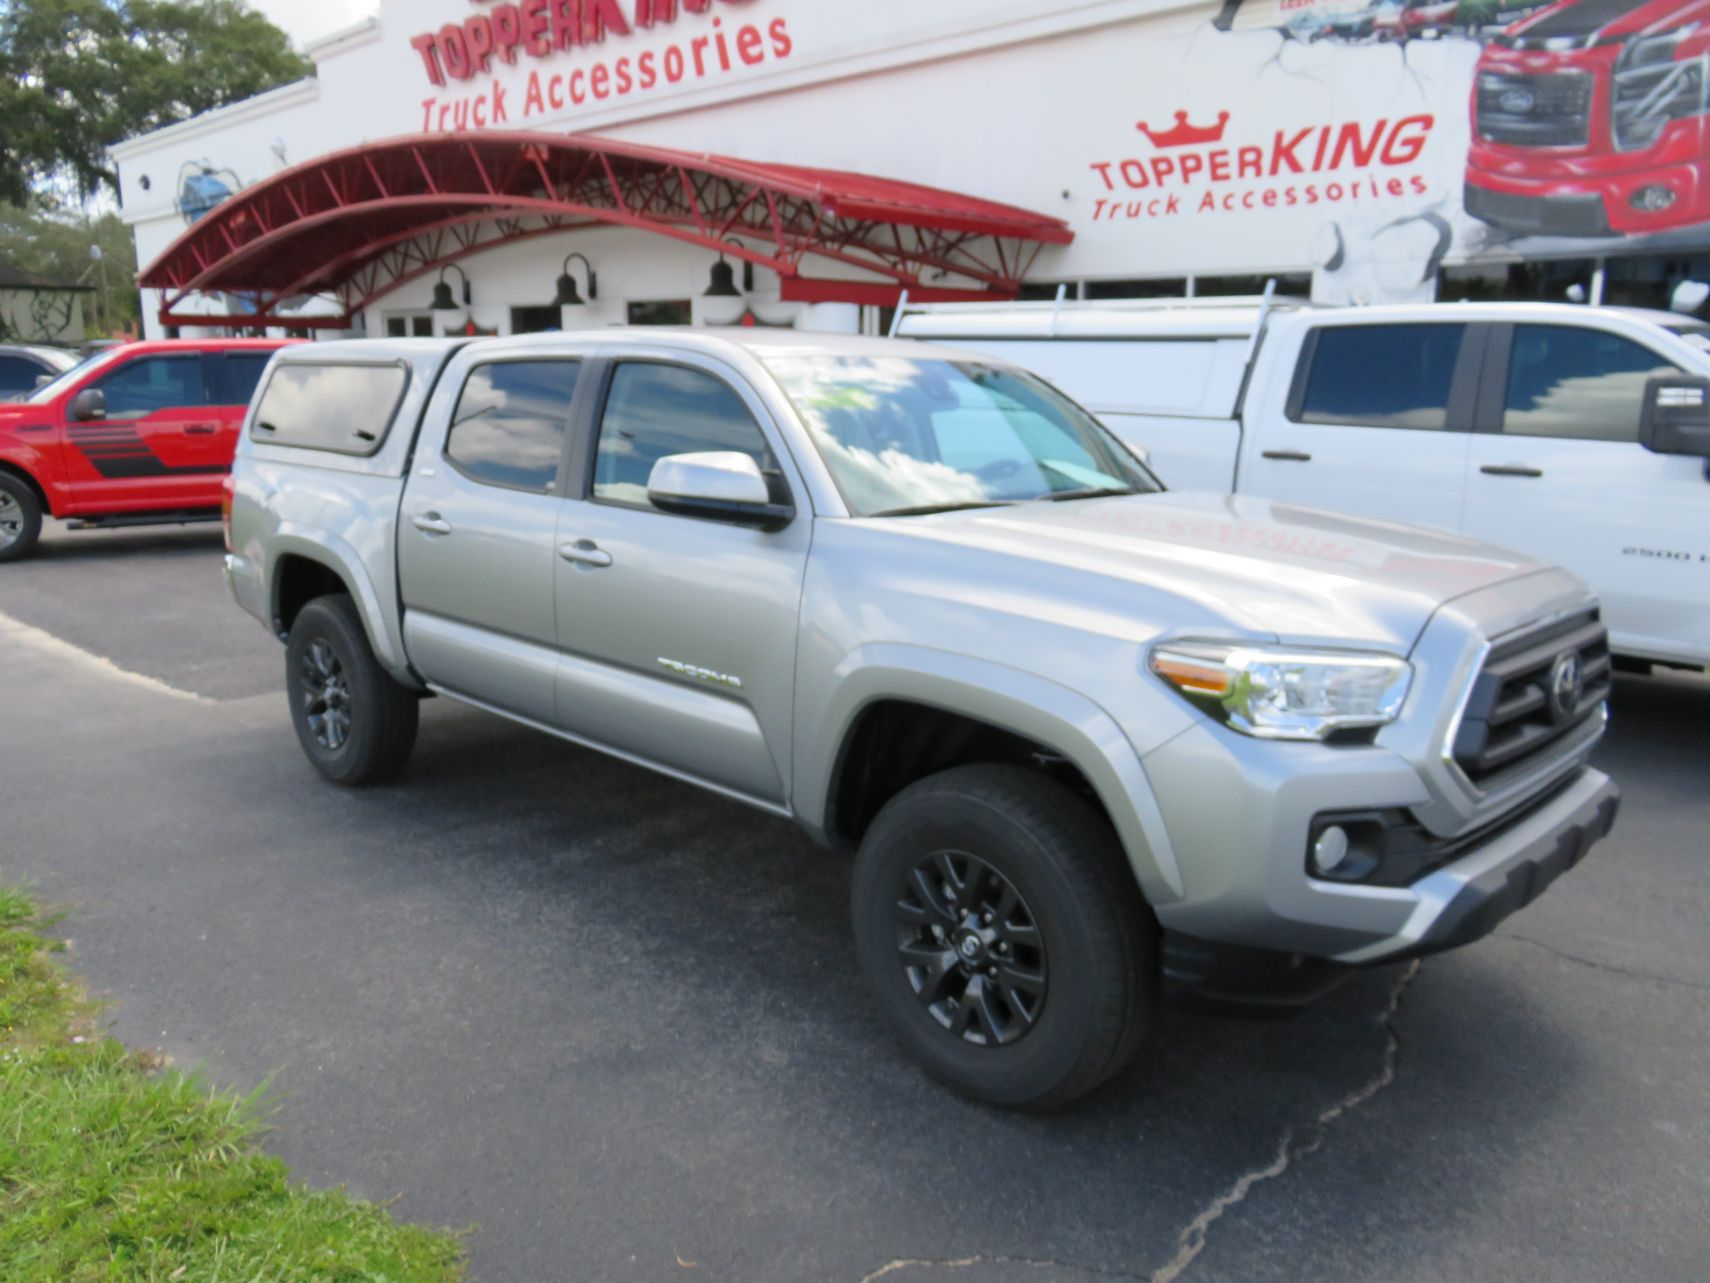 2020 Toyota Tacoma with Ranch Sierra Fiberglass Topper, Windoor, Tint, Hitch. Call TopperKING Brandon 813-689-2449 or Clearwater 727-530-9066